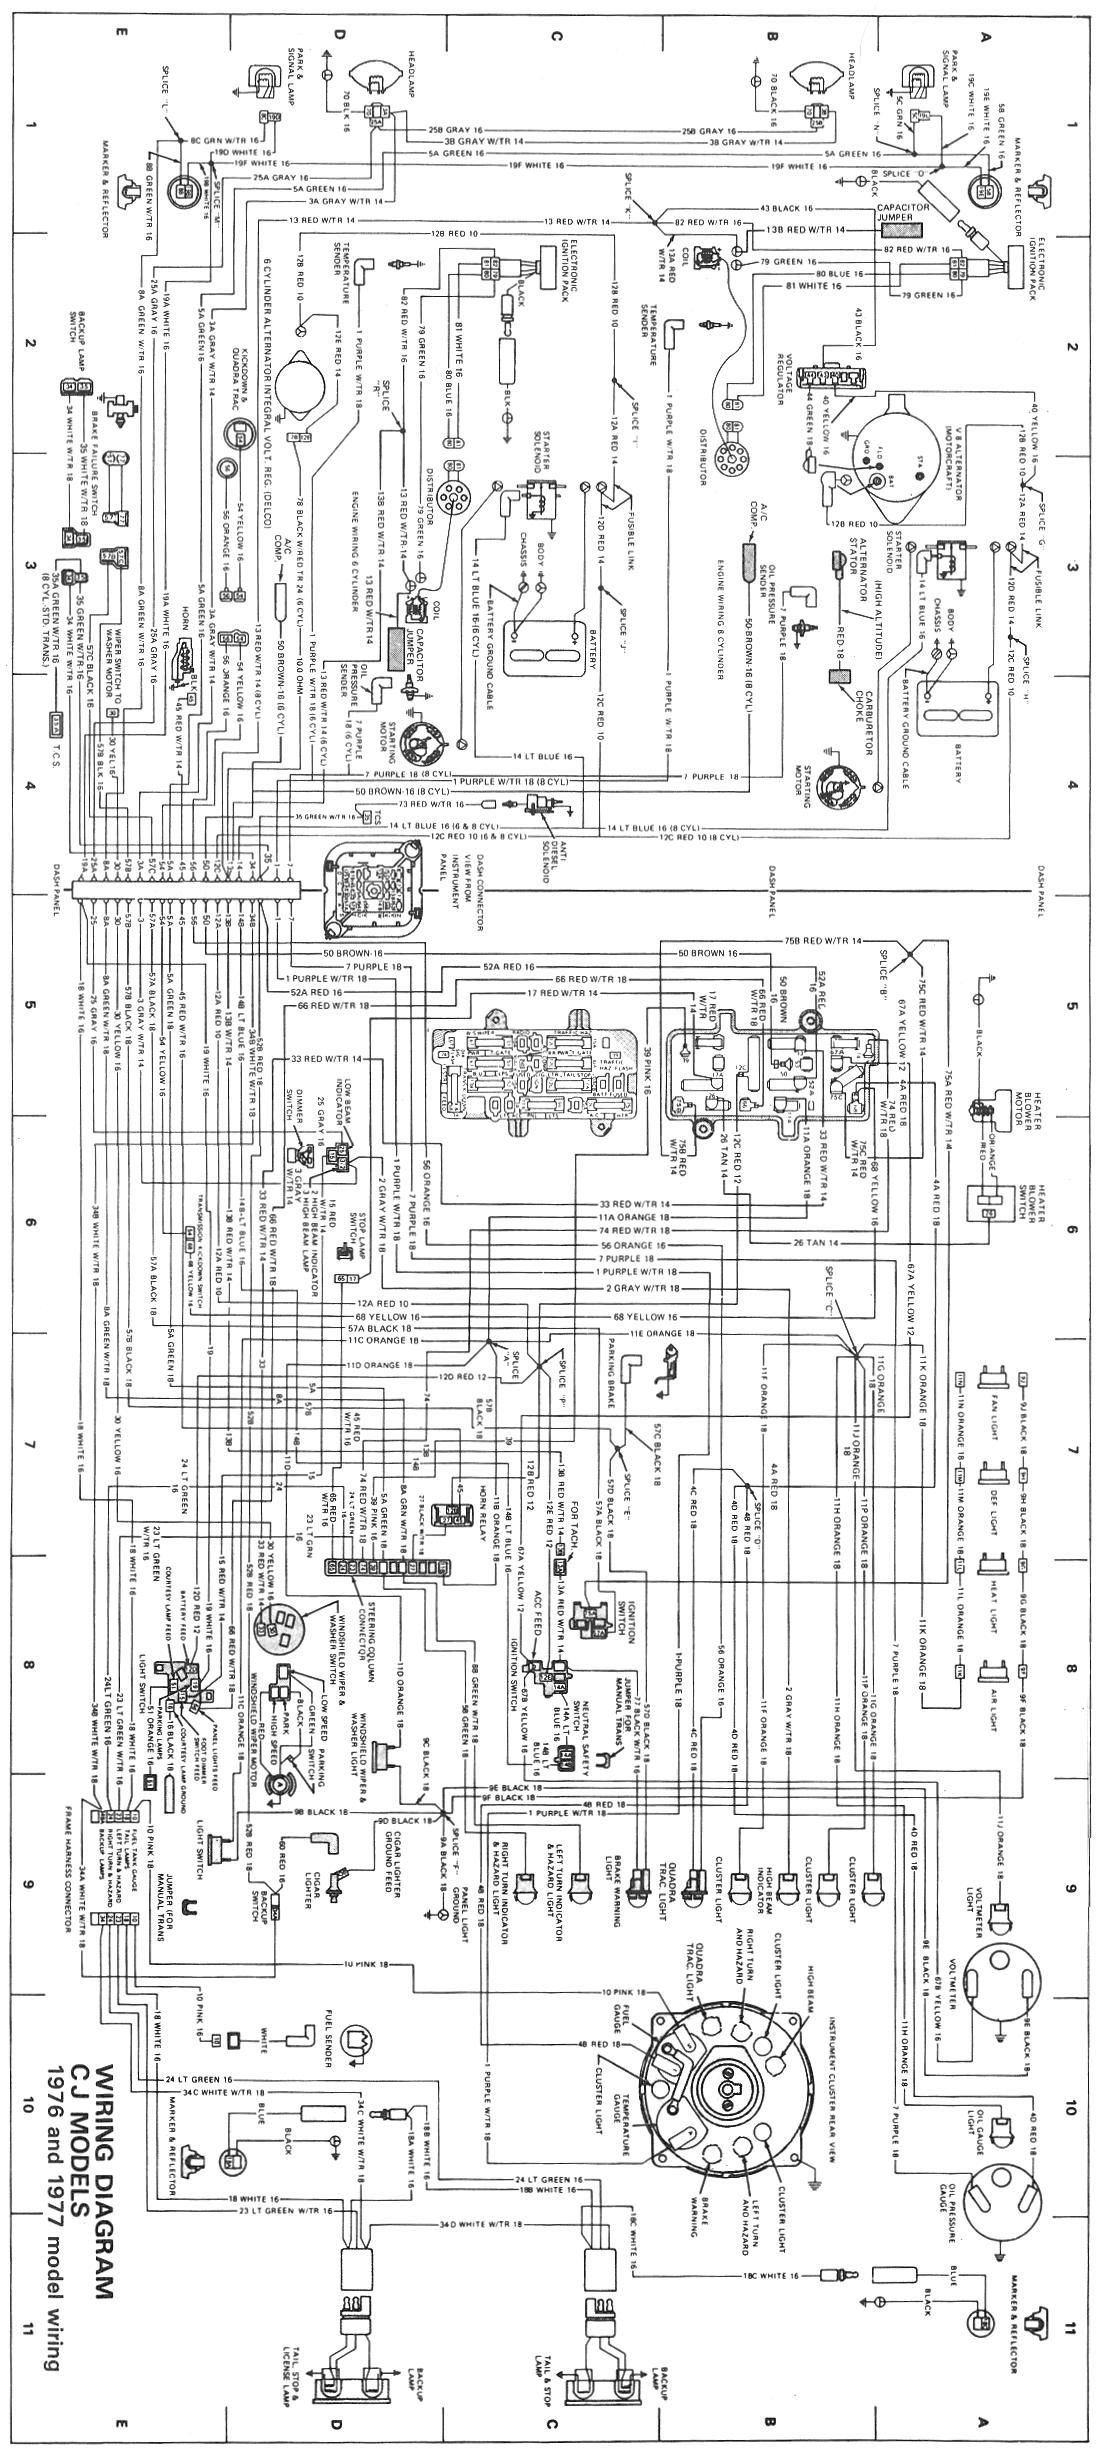 Jeep J10 Wiring Schema Diagrams Diagram 1988 Subaru Wagon Schematic 1976 Harness